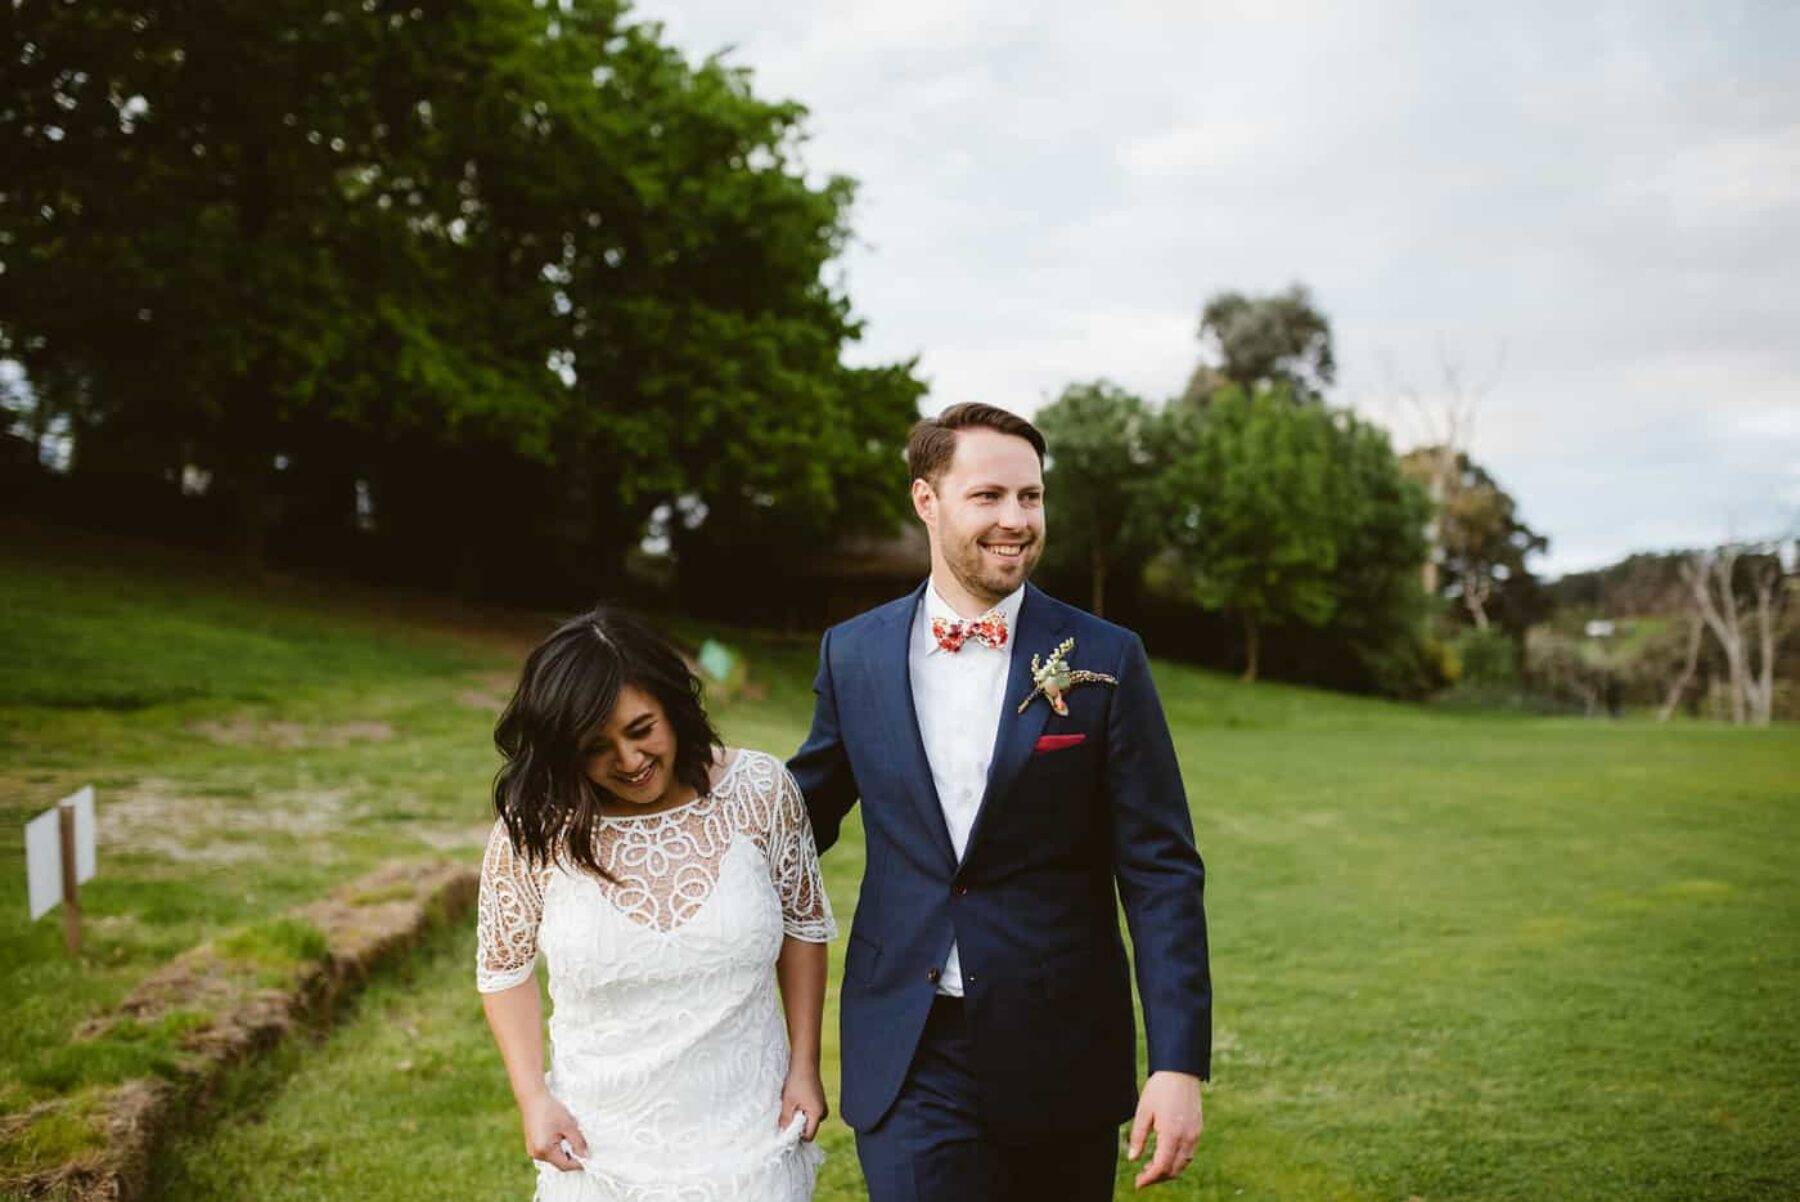 Rustic wedding at The Farm Yarra Valley - photography by Motta Weddings